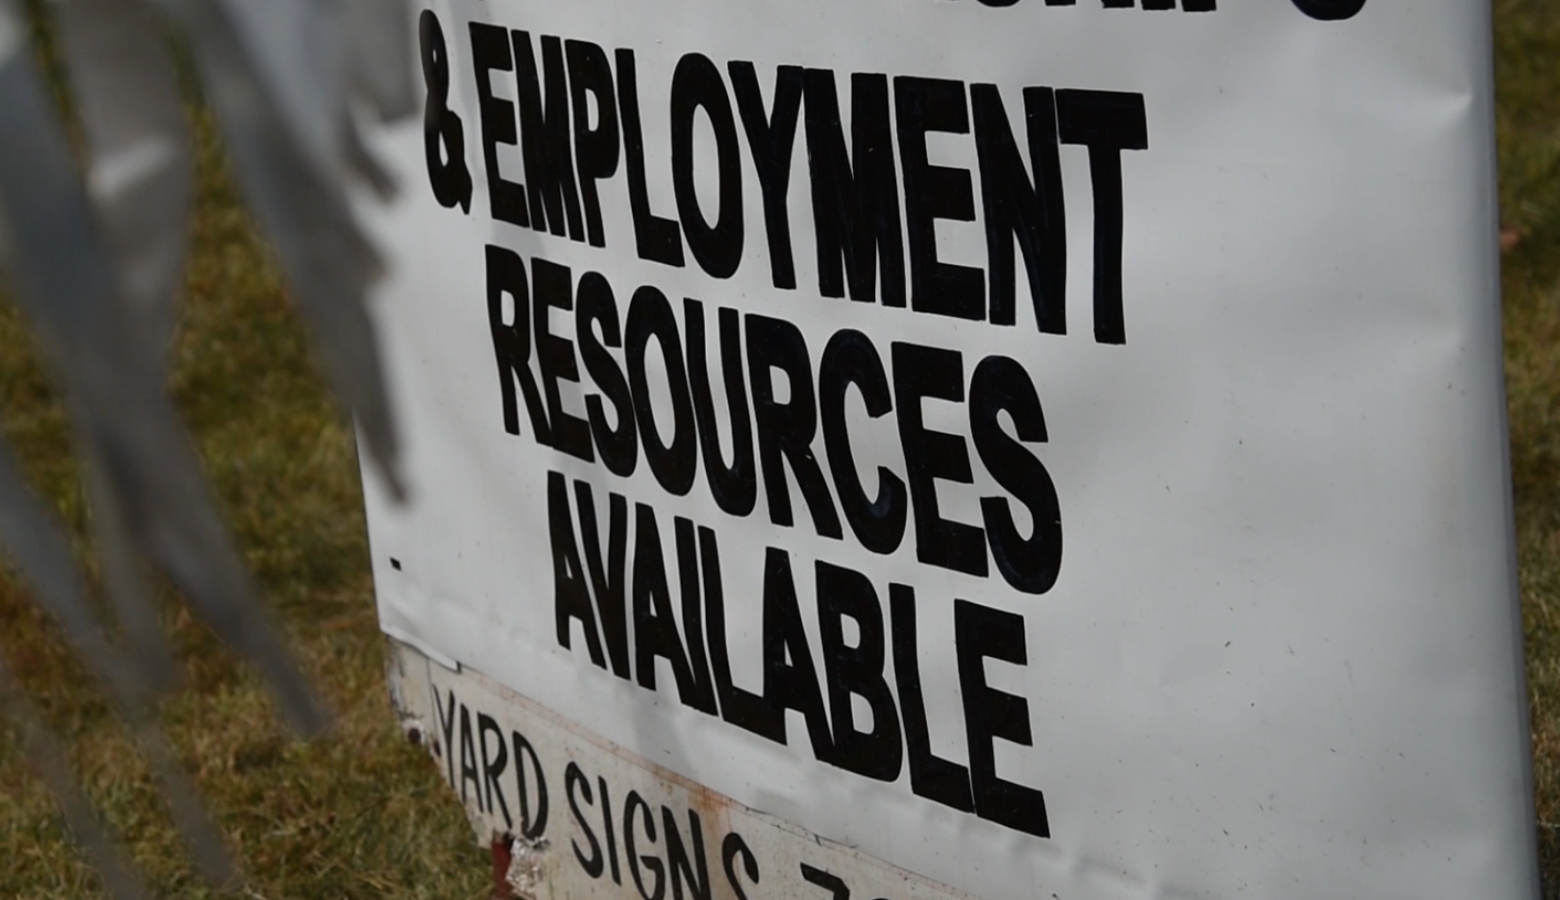 A sign outside Nu Corinthian Baptist Church in Indianapolis advertises employment resources at a weekly food handout during the pandemic. (Justin Hicks / IPB News)